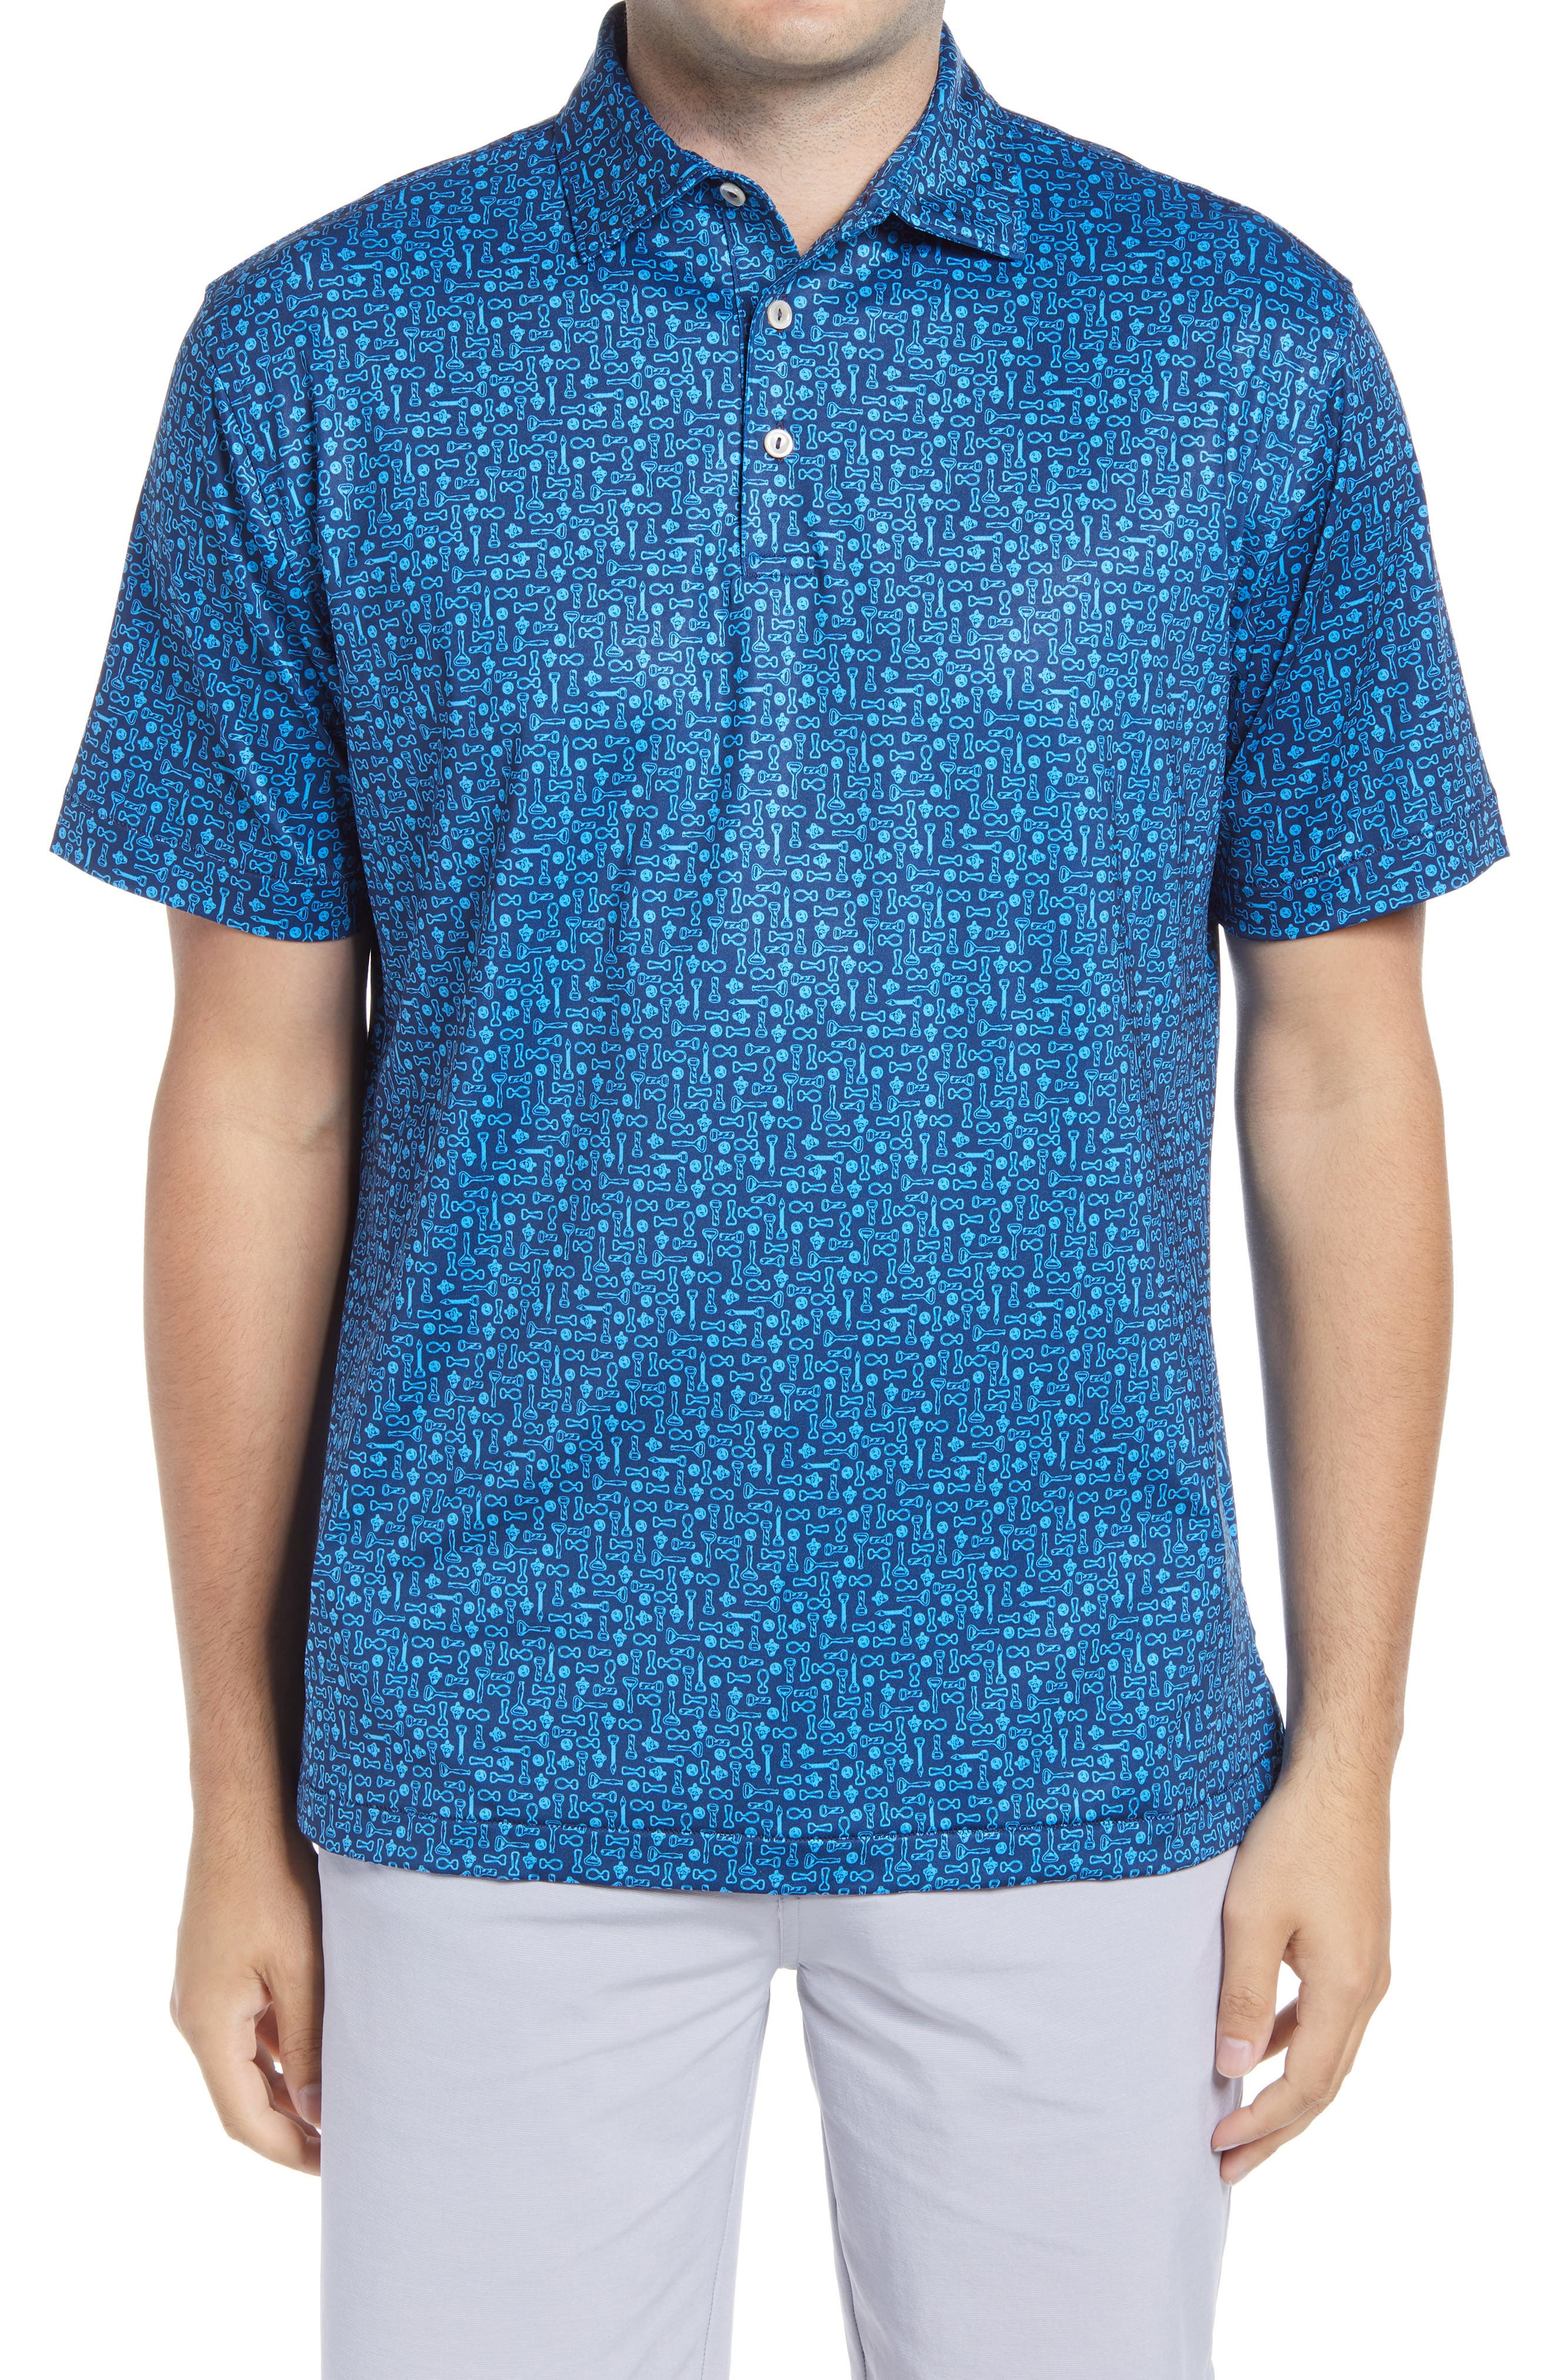 Smart, stretchy tech fabric means a flexible performance fit in a versatile polo shirt patterned in a vibrant print. Style Name: Peter Millar Print Stretch Polo Shirt. Style Number: 6070190. Available in stores.